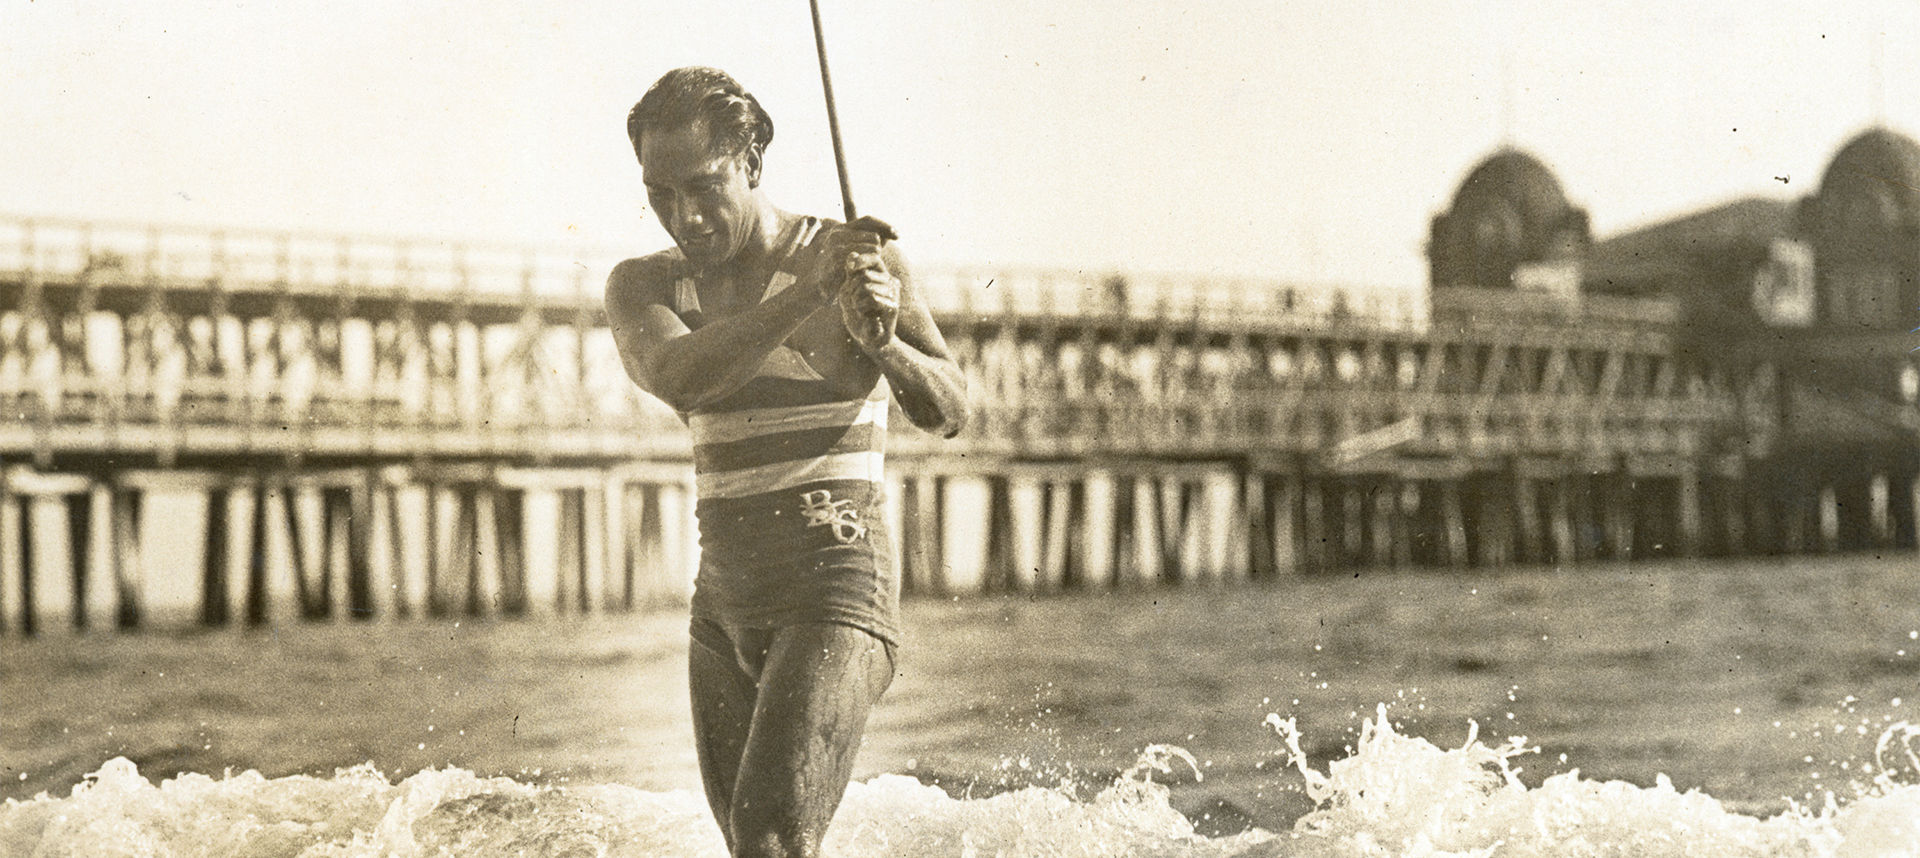 Duke exiting ocean with stick in hand